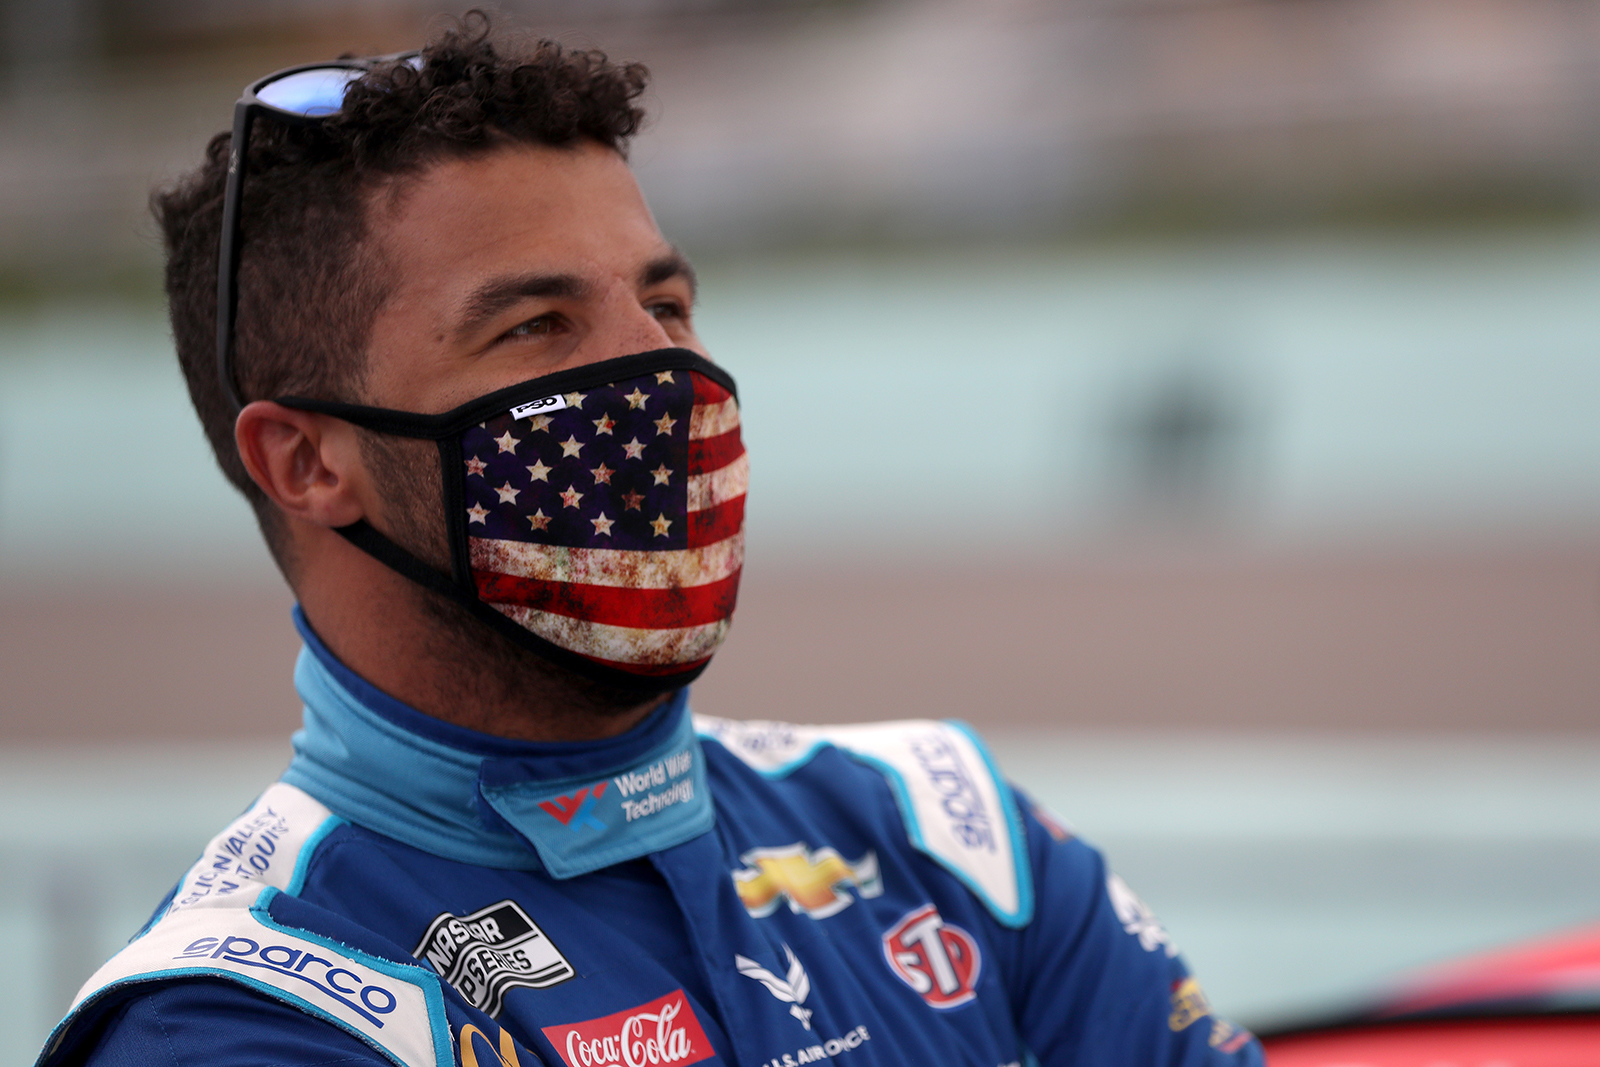 Bubba Wallace, driver of the #43 World Wide Technology Chevrolet, stands on the grid prior to the NASCAR Cup Series Dixie Vodka 400 at Homestead-Miami Speedway on June 14, in Homestead, Florida.